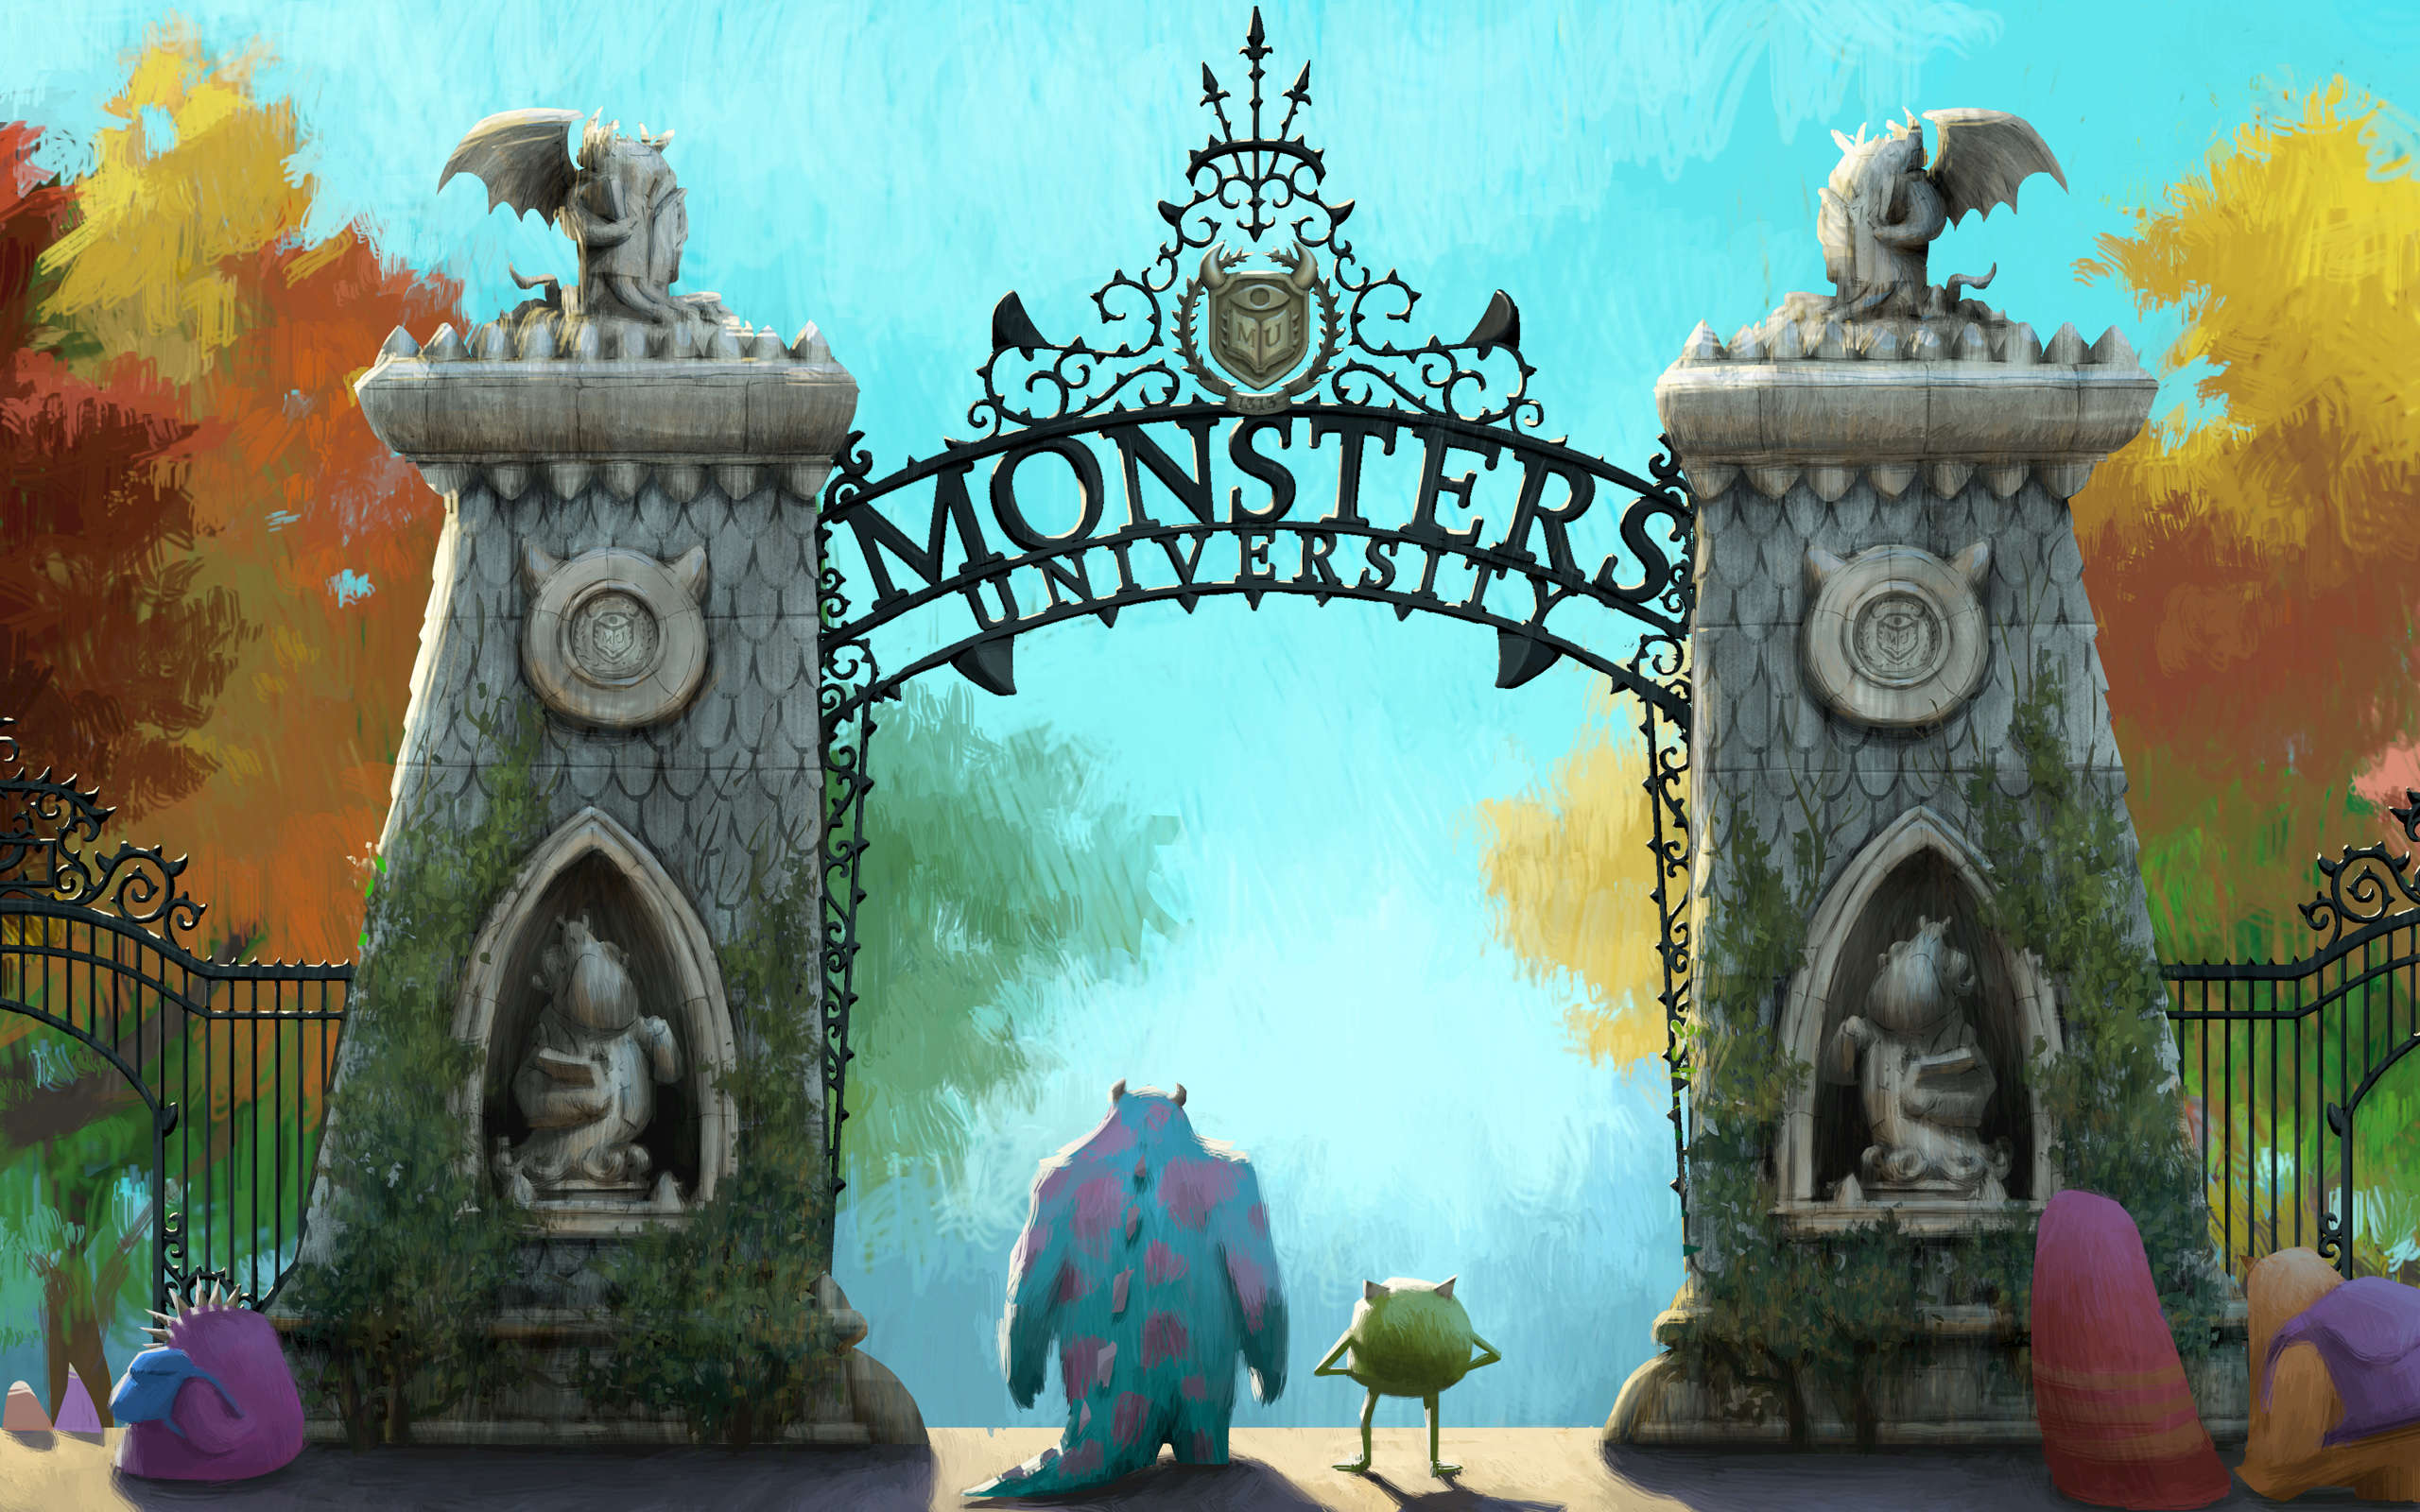 Monster University Animated Wallpaper